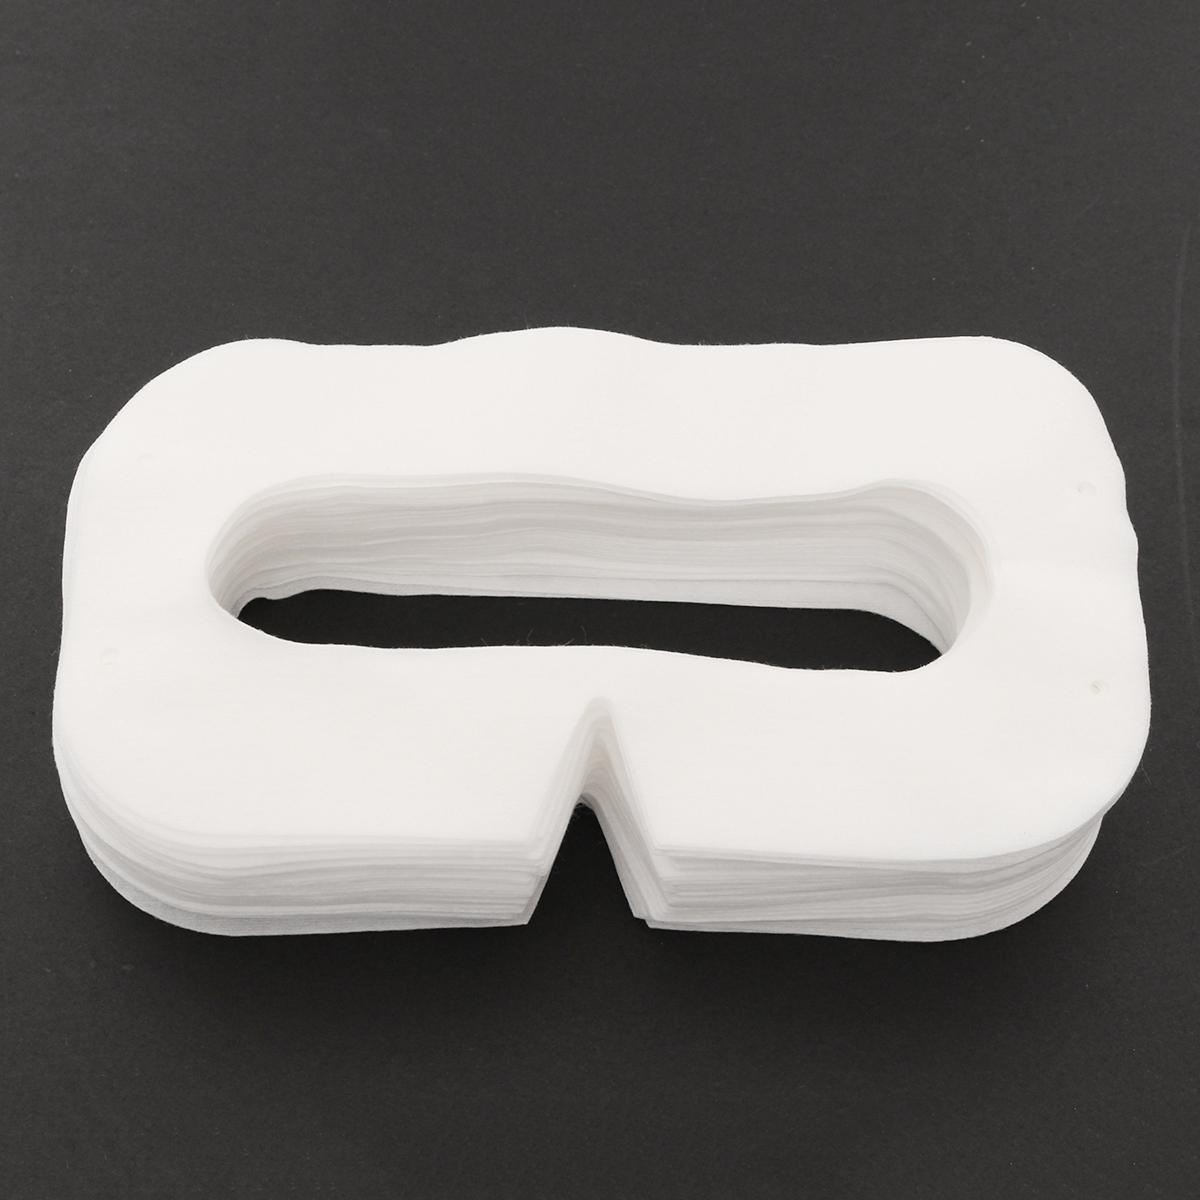 50 PCS Disposable Hygiene Eye Pad Face Mask Cover for HTC Vive/PlayStati